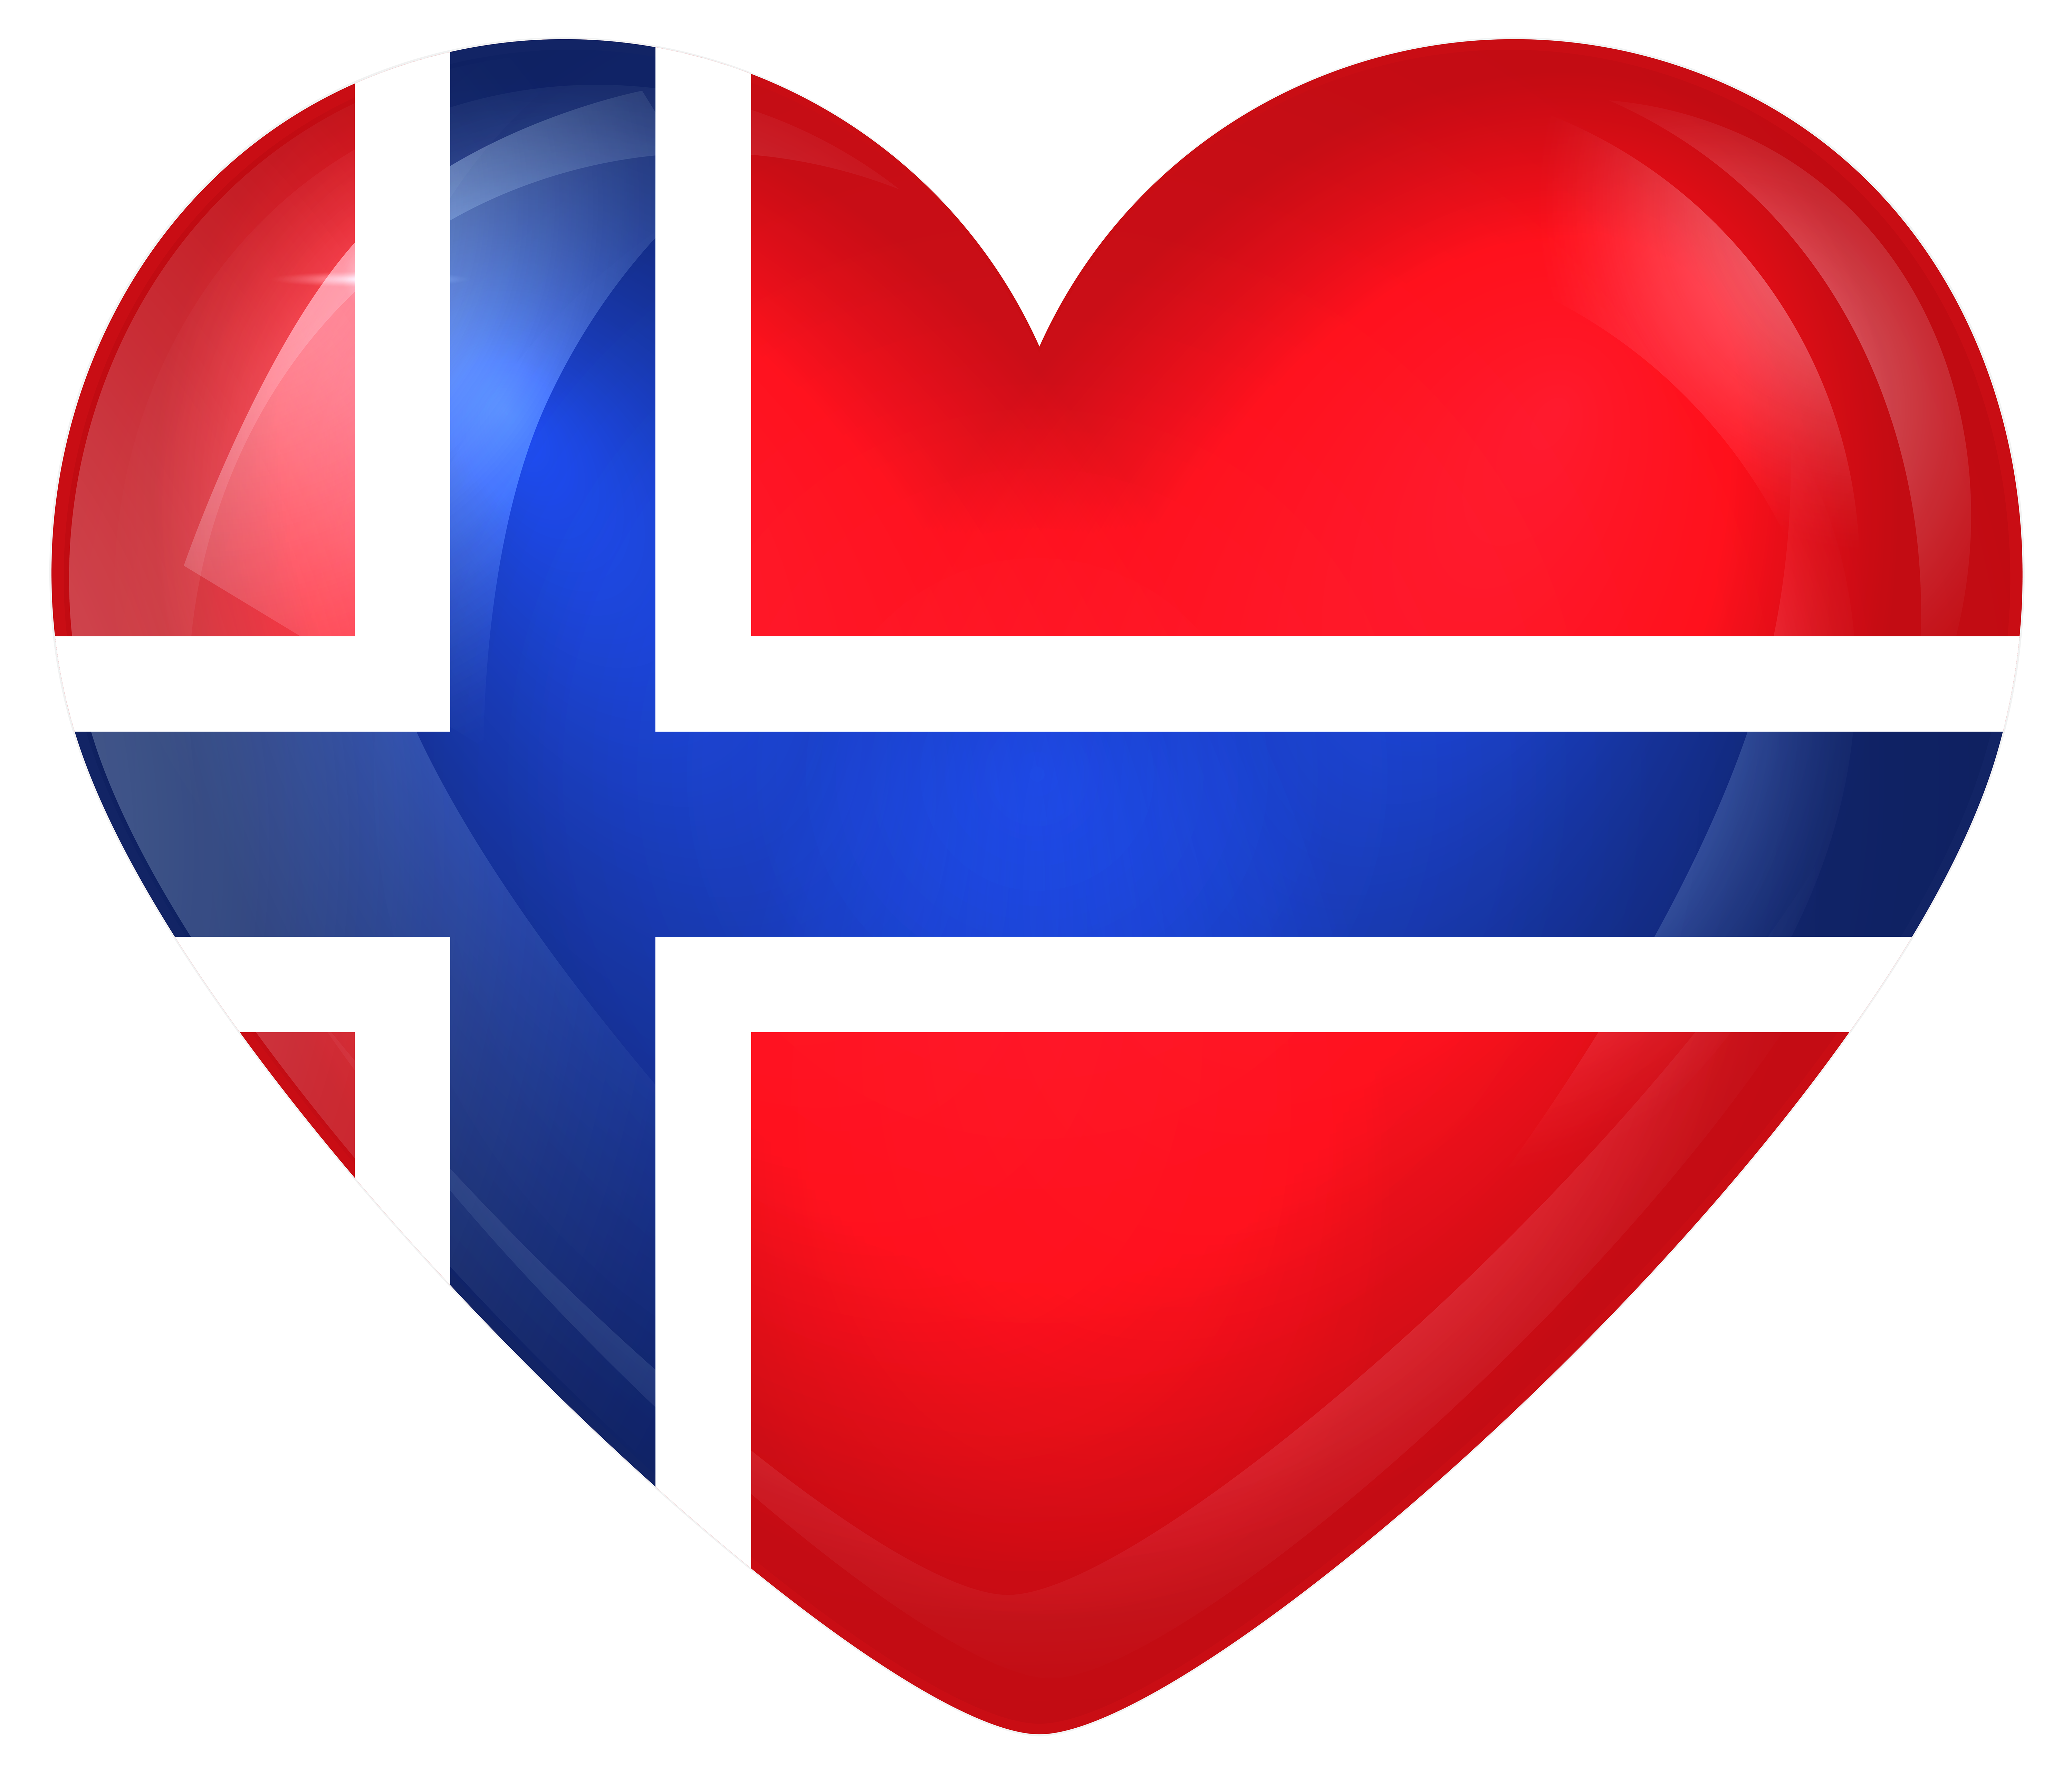 Norway large heart gallery. Hearts clipart flag